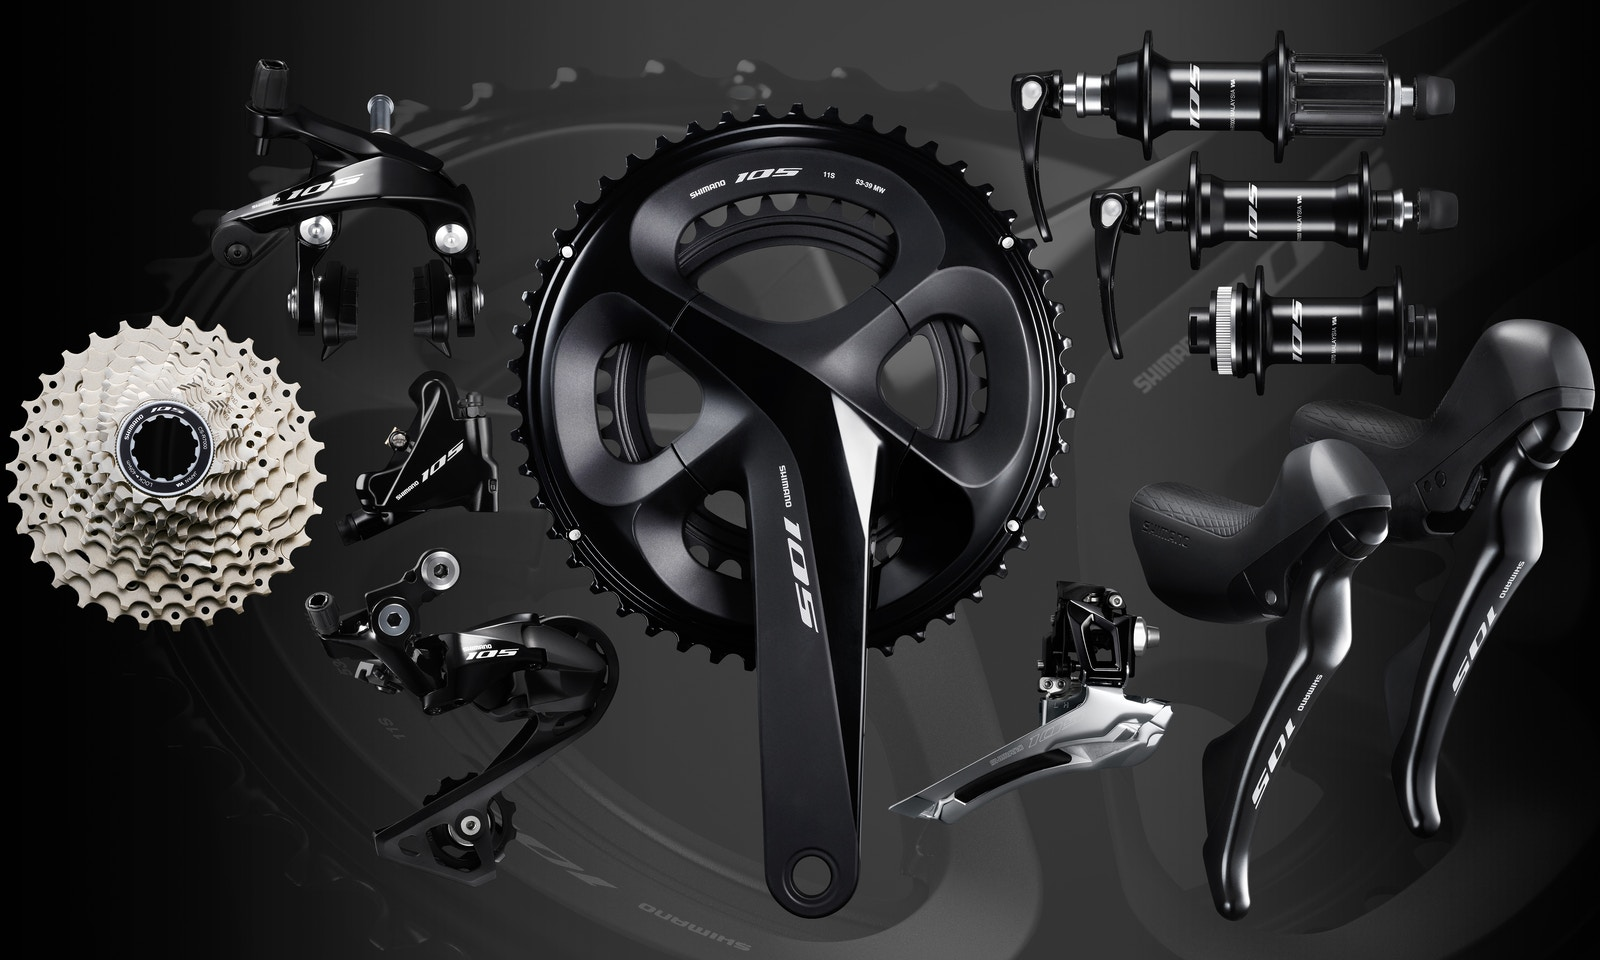 New 2018 Shimano 105 R7000 Groupset — Nine Things to Know